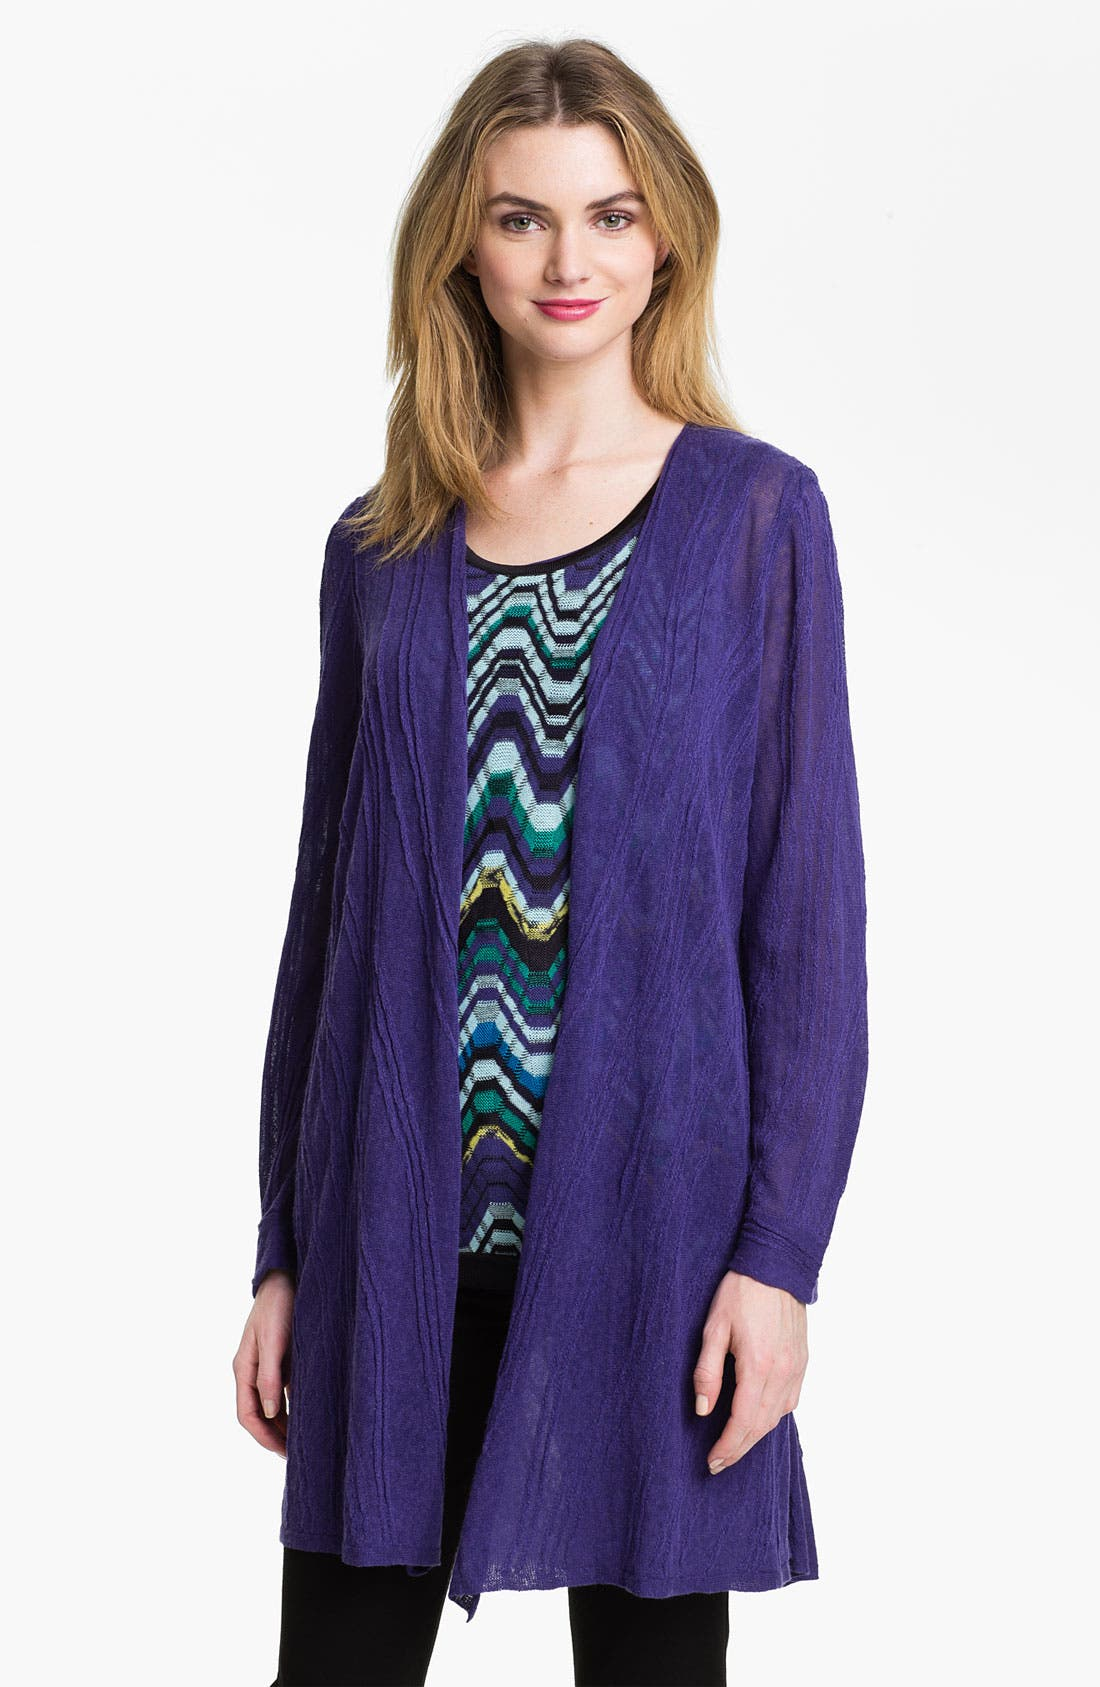 Alternate Image 1 Selected - Nic + Zoe 'Wave' Textured Long Cardigan